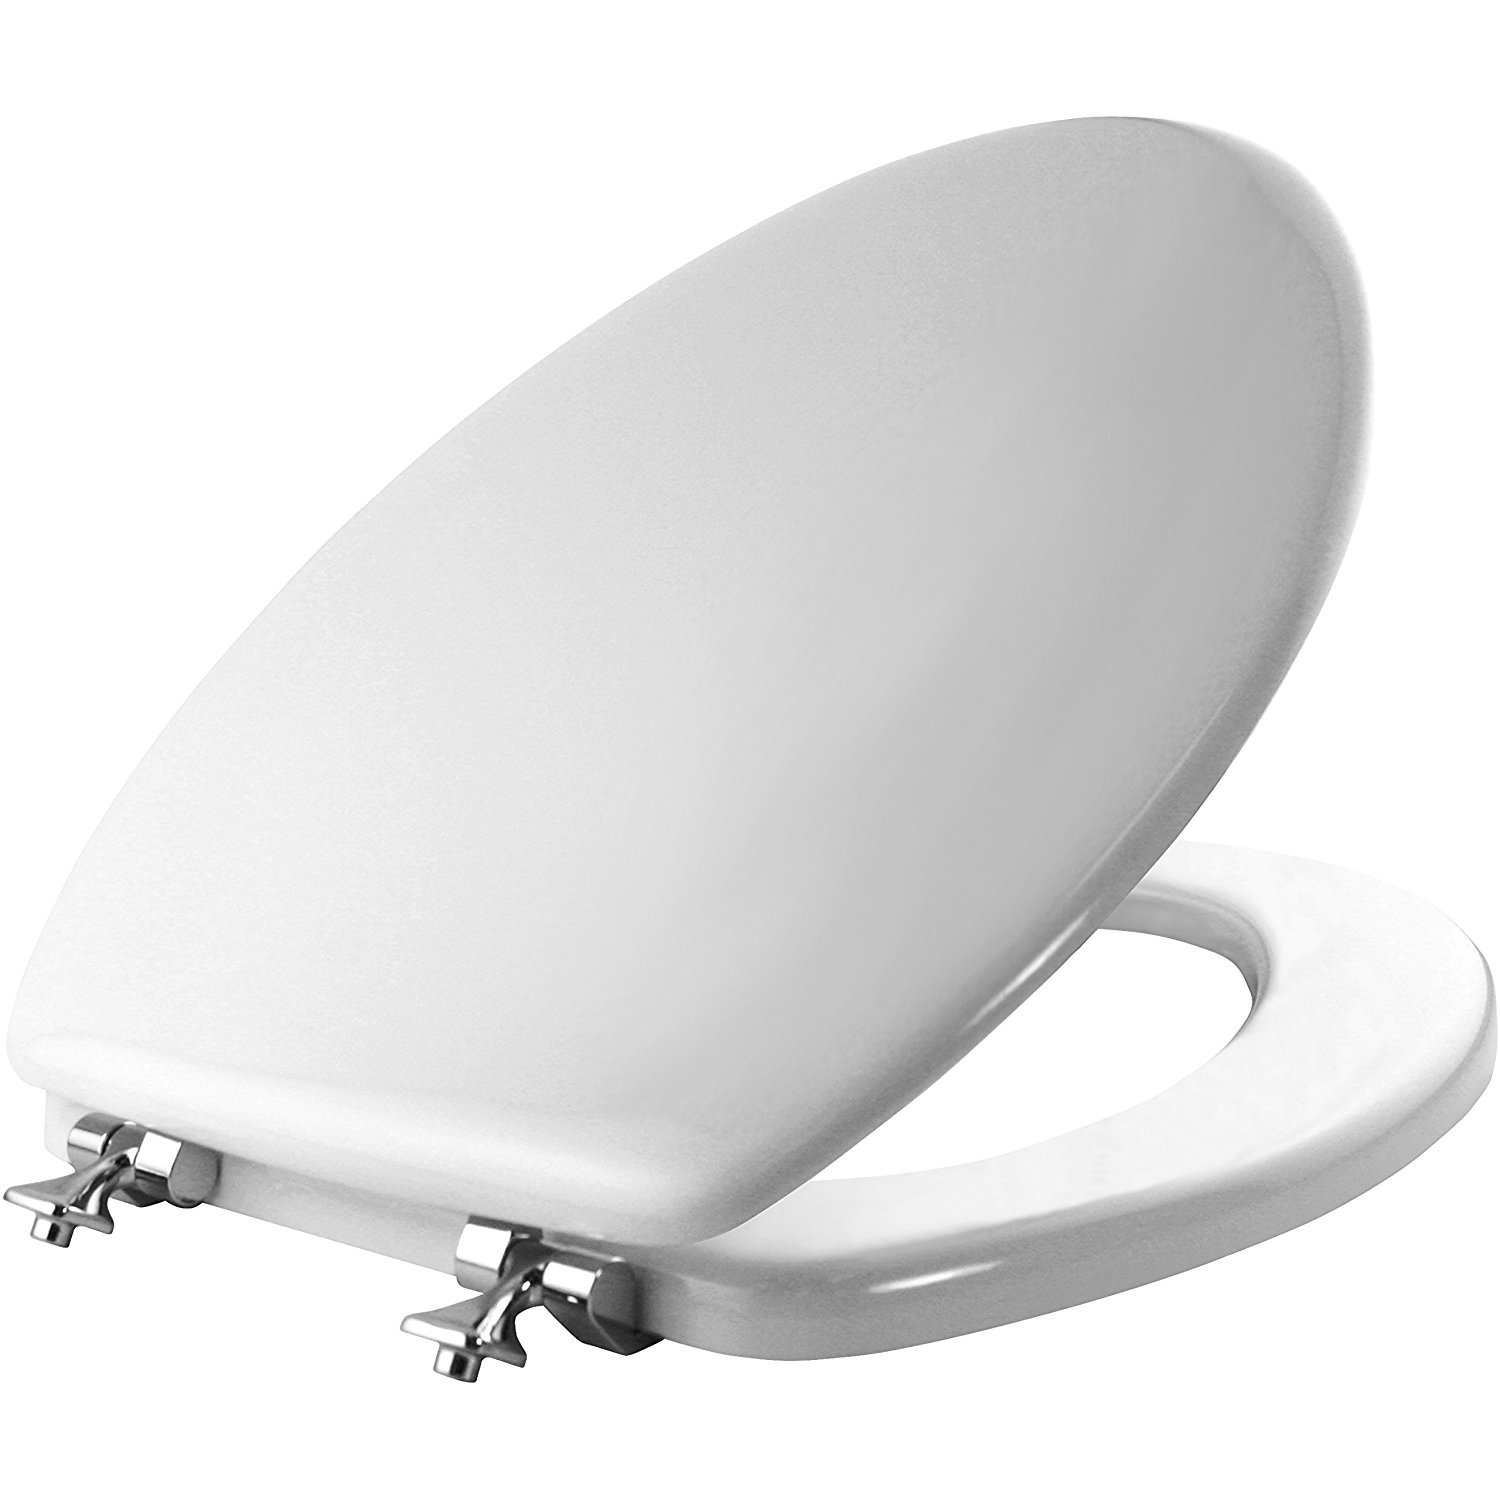 MAYFAIR 1844CP 000 Toilet Seat with Chrome Hinges will Never Come Loose, ELONGATED, Durable Enameled Wood, White by Mayfair